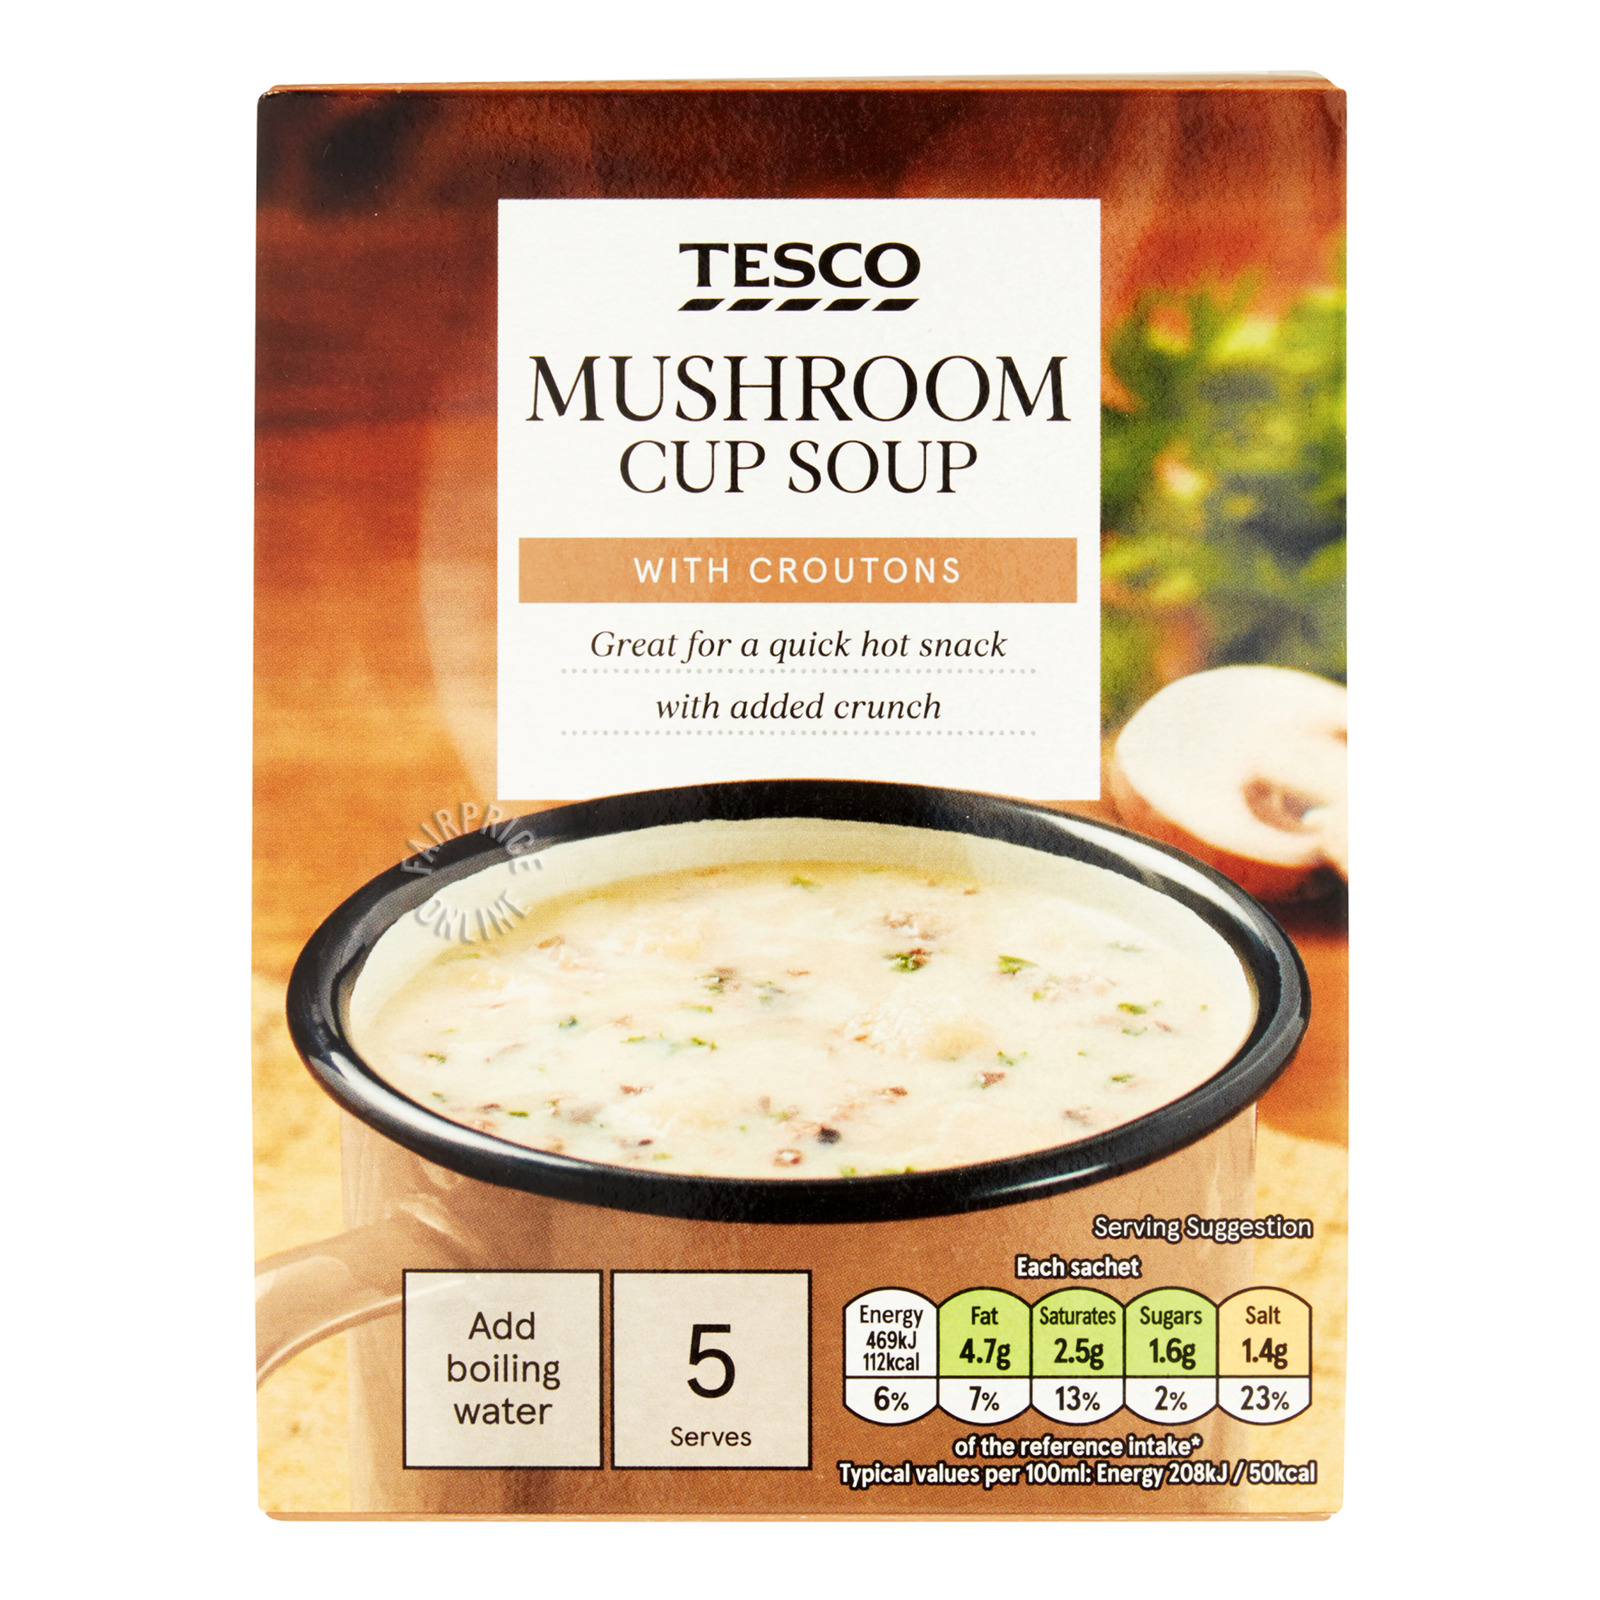 Tesco Instant Cup Soup - Mushroom With Croutons